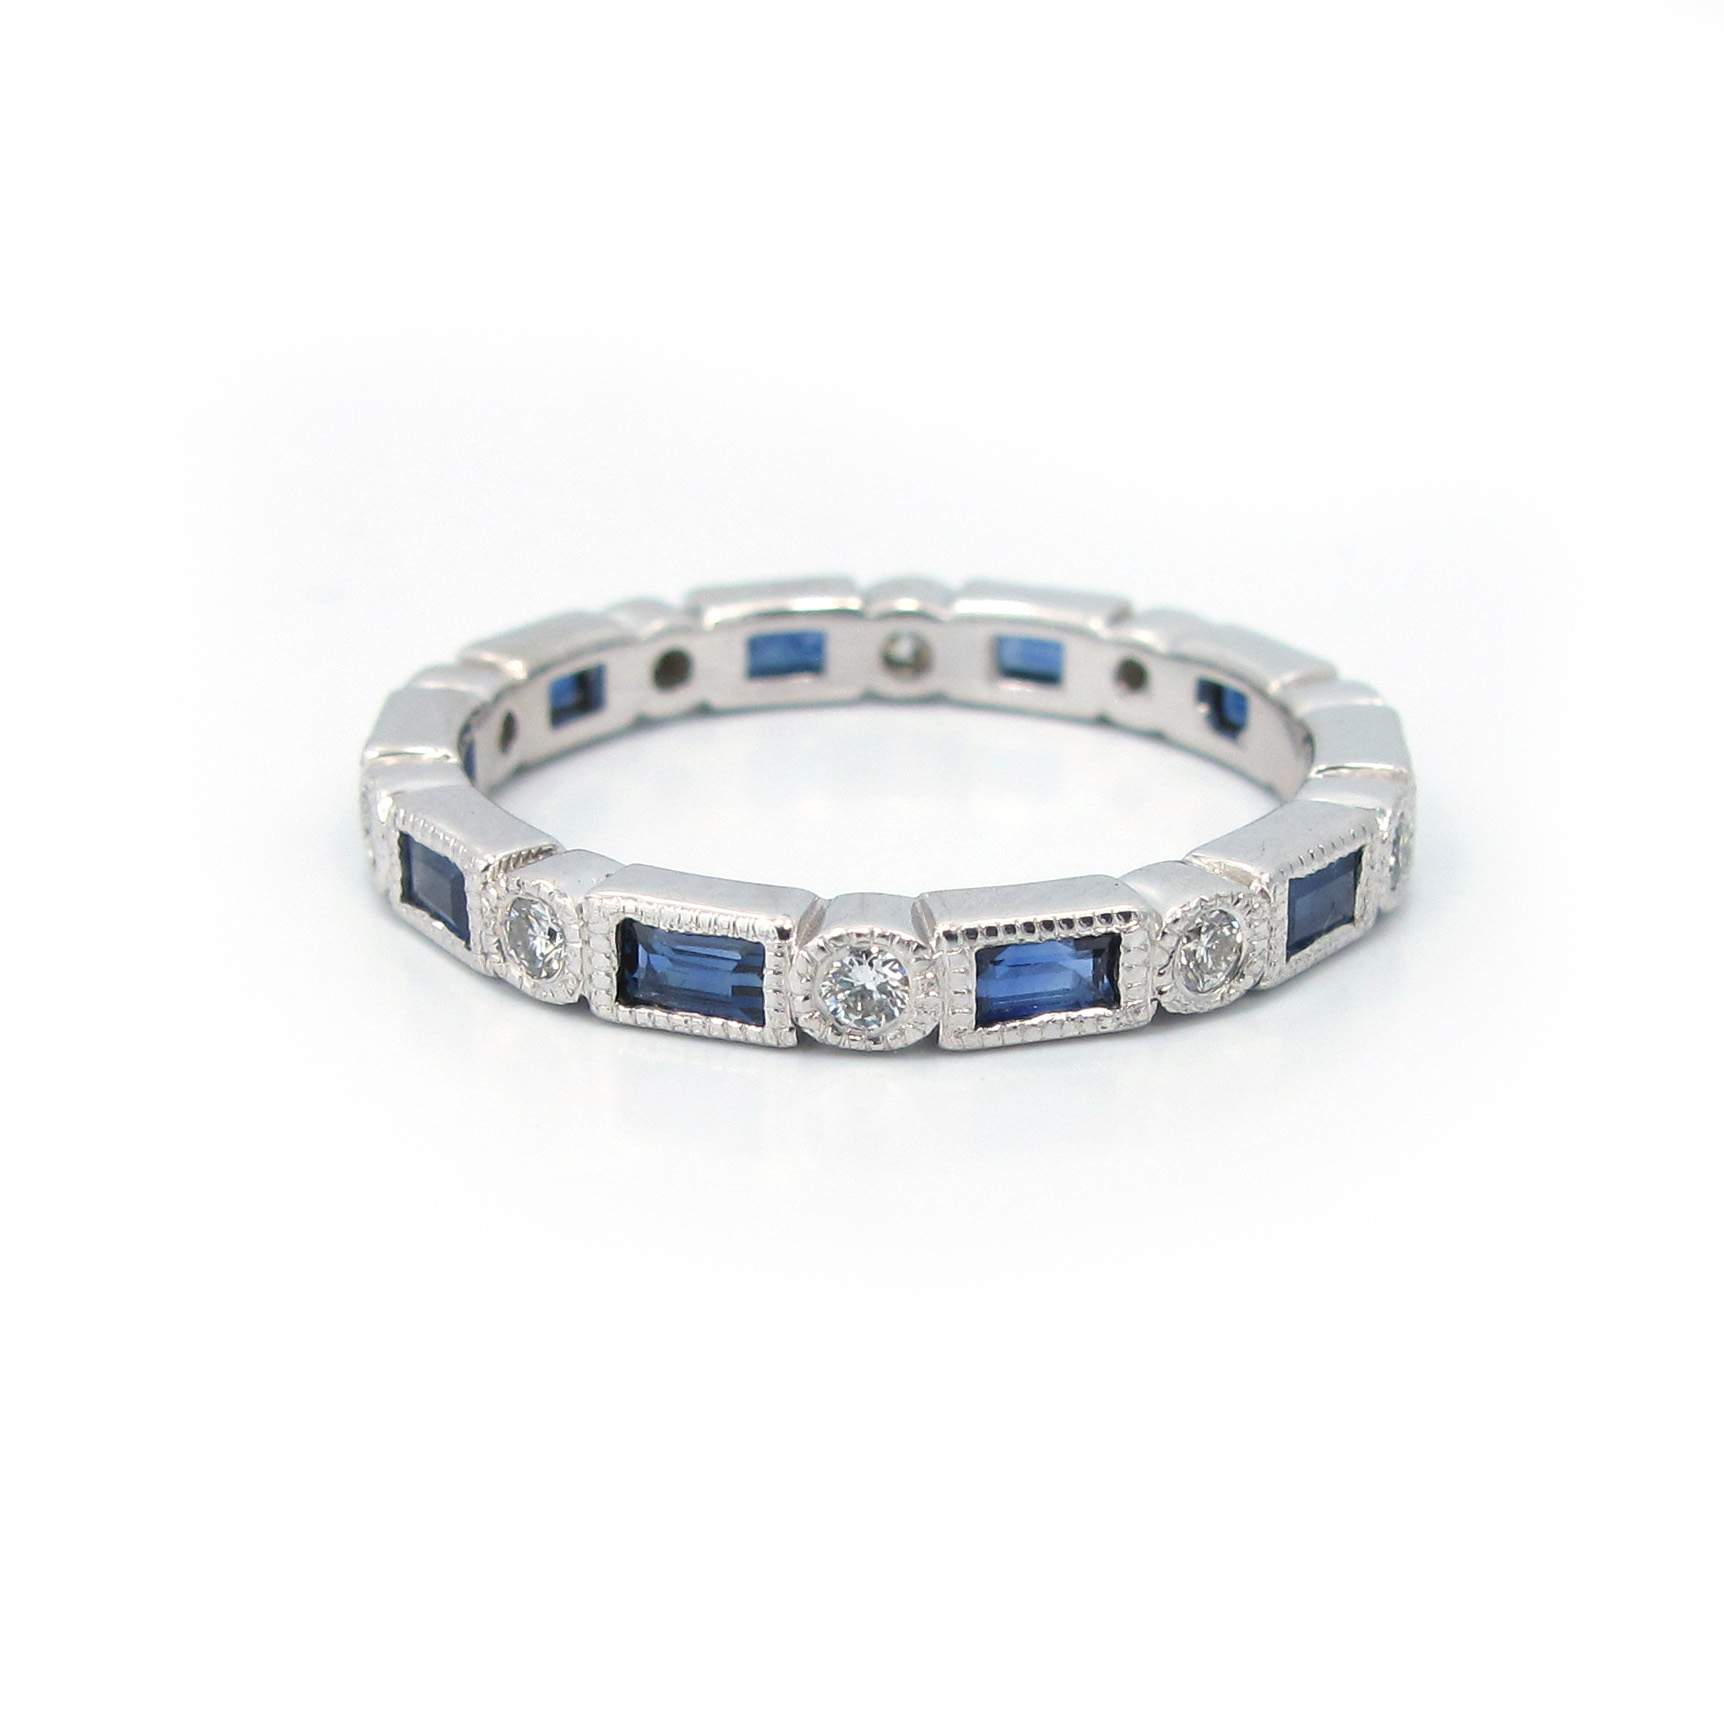 bands band round anniversary wb diamond platinum bzdiaprsaph square in set sapphire gold pave eternity bezel white prong